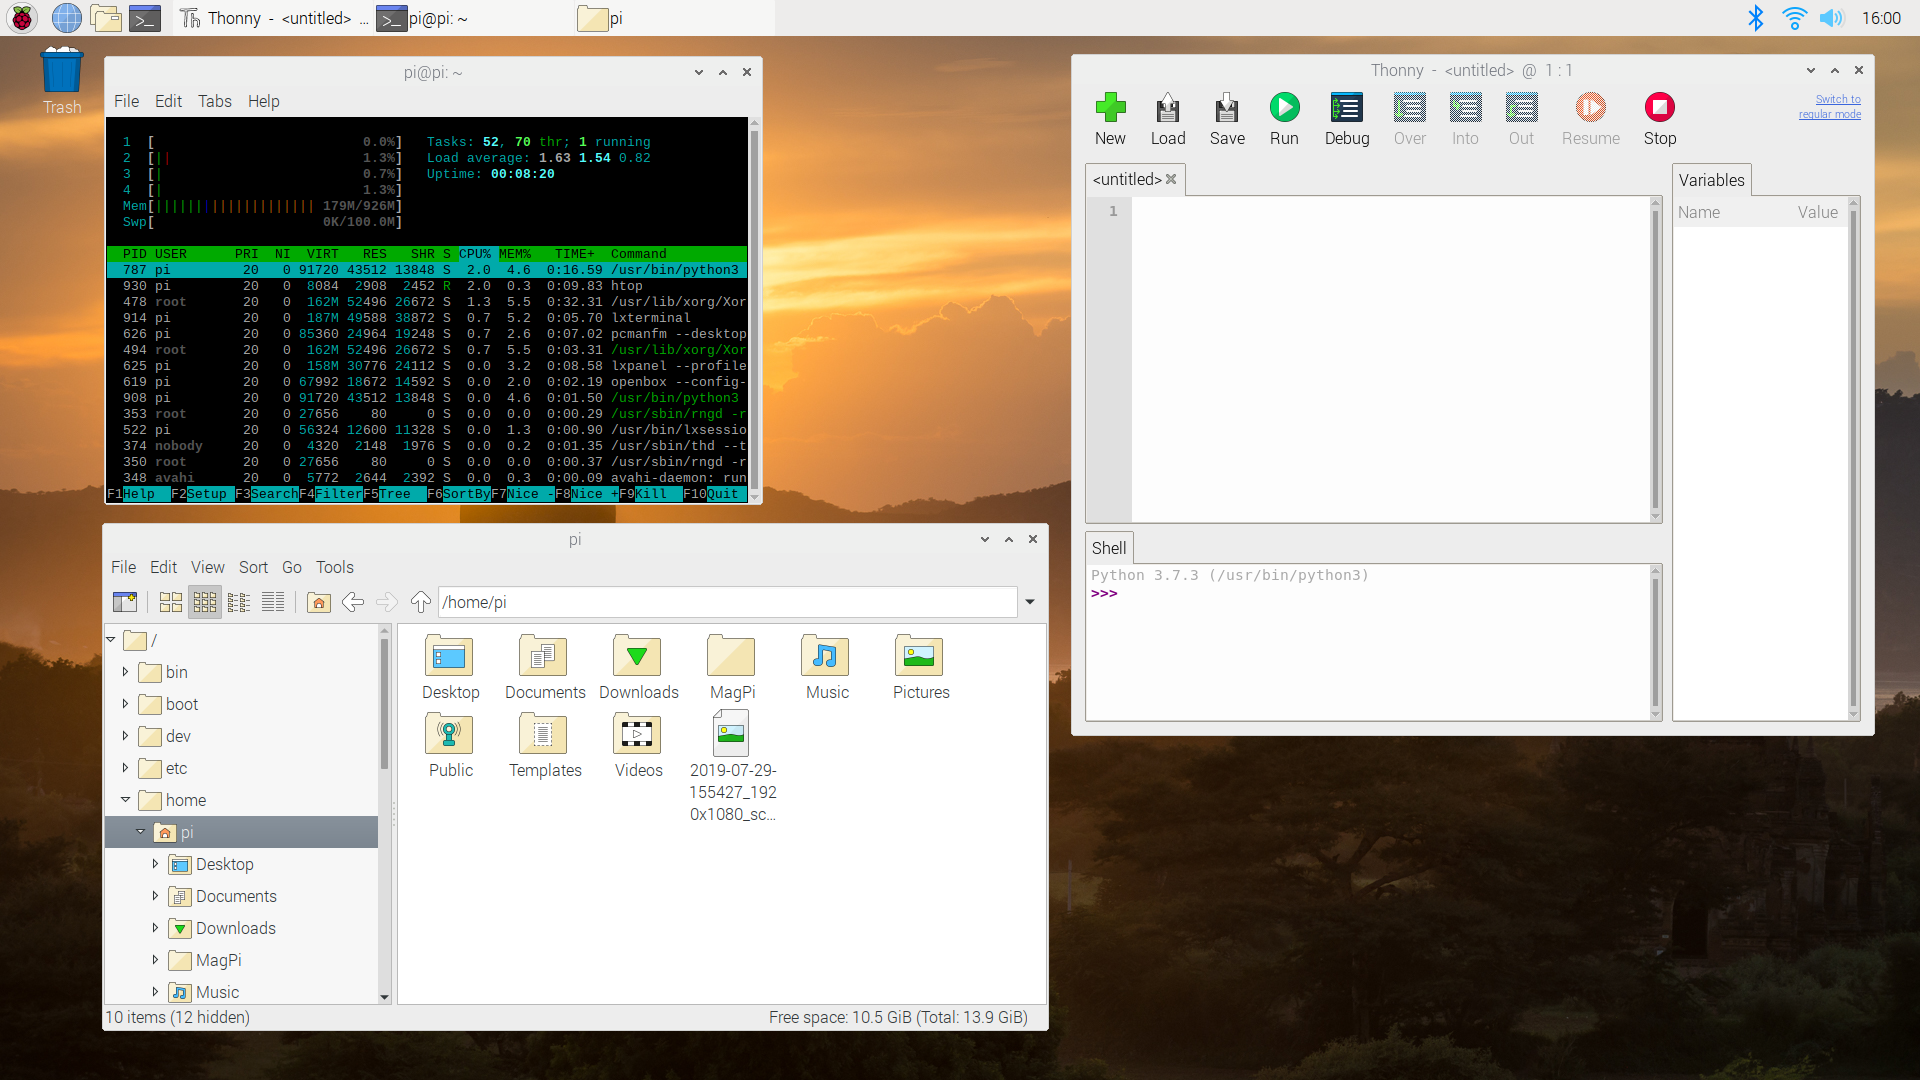 Screenshot of Raspbian OS